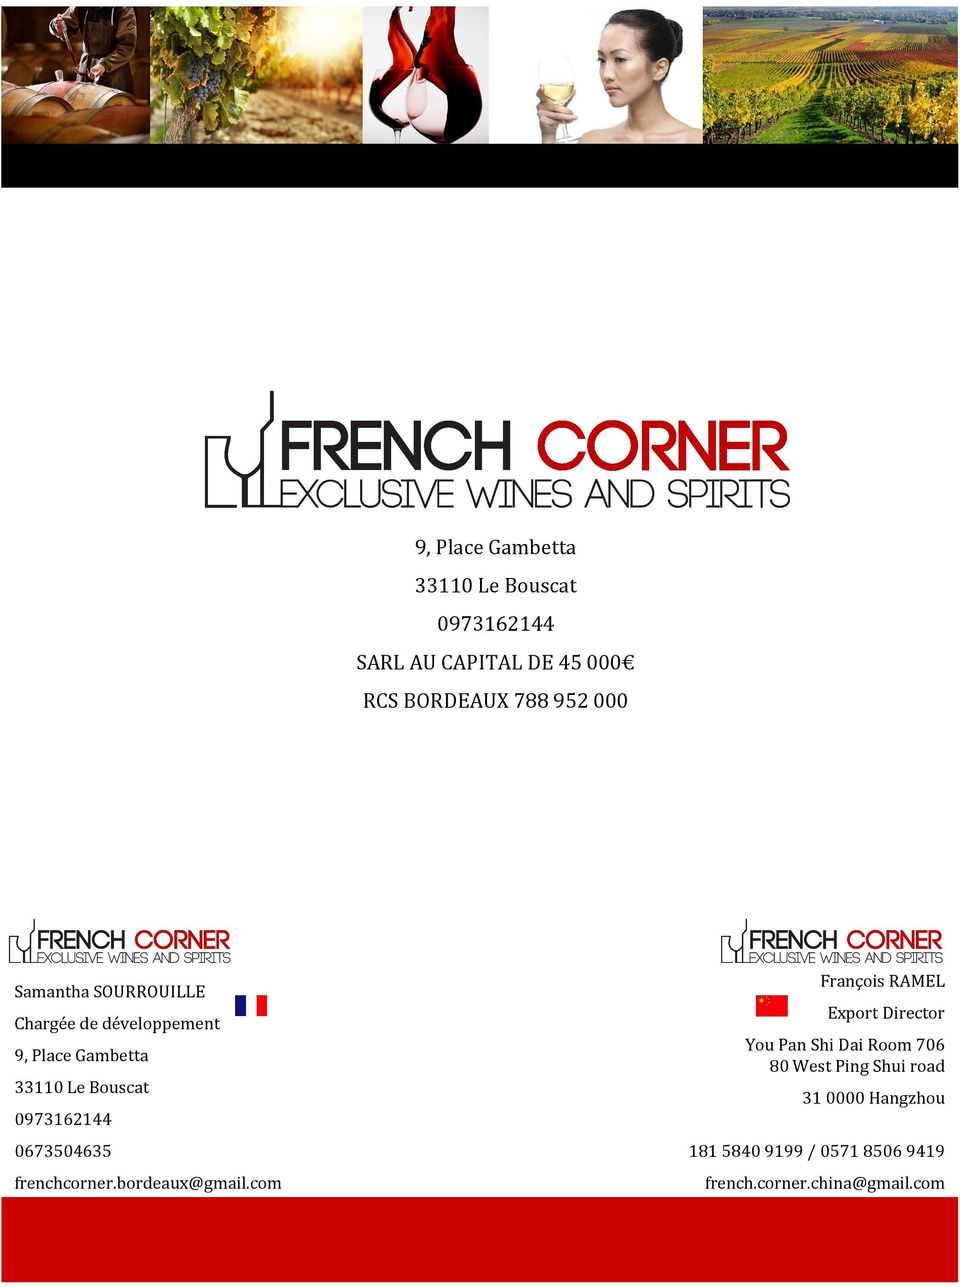 0673504635 frenchcorner.bordeaux@gmail.